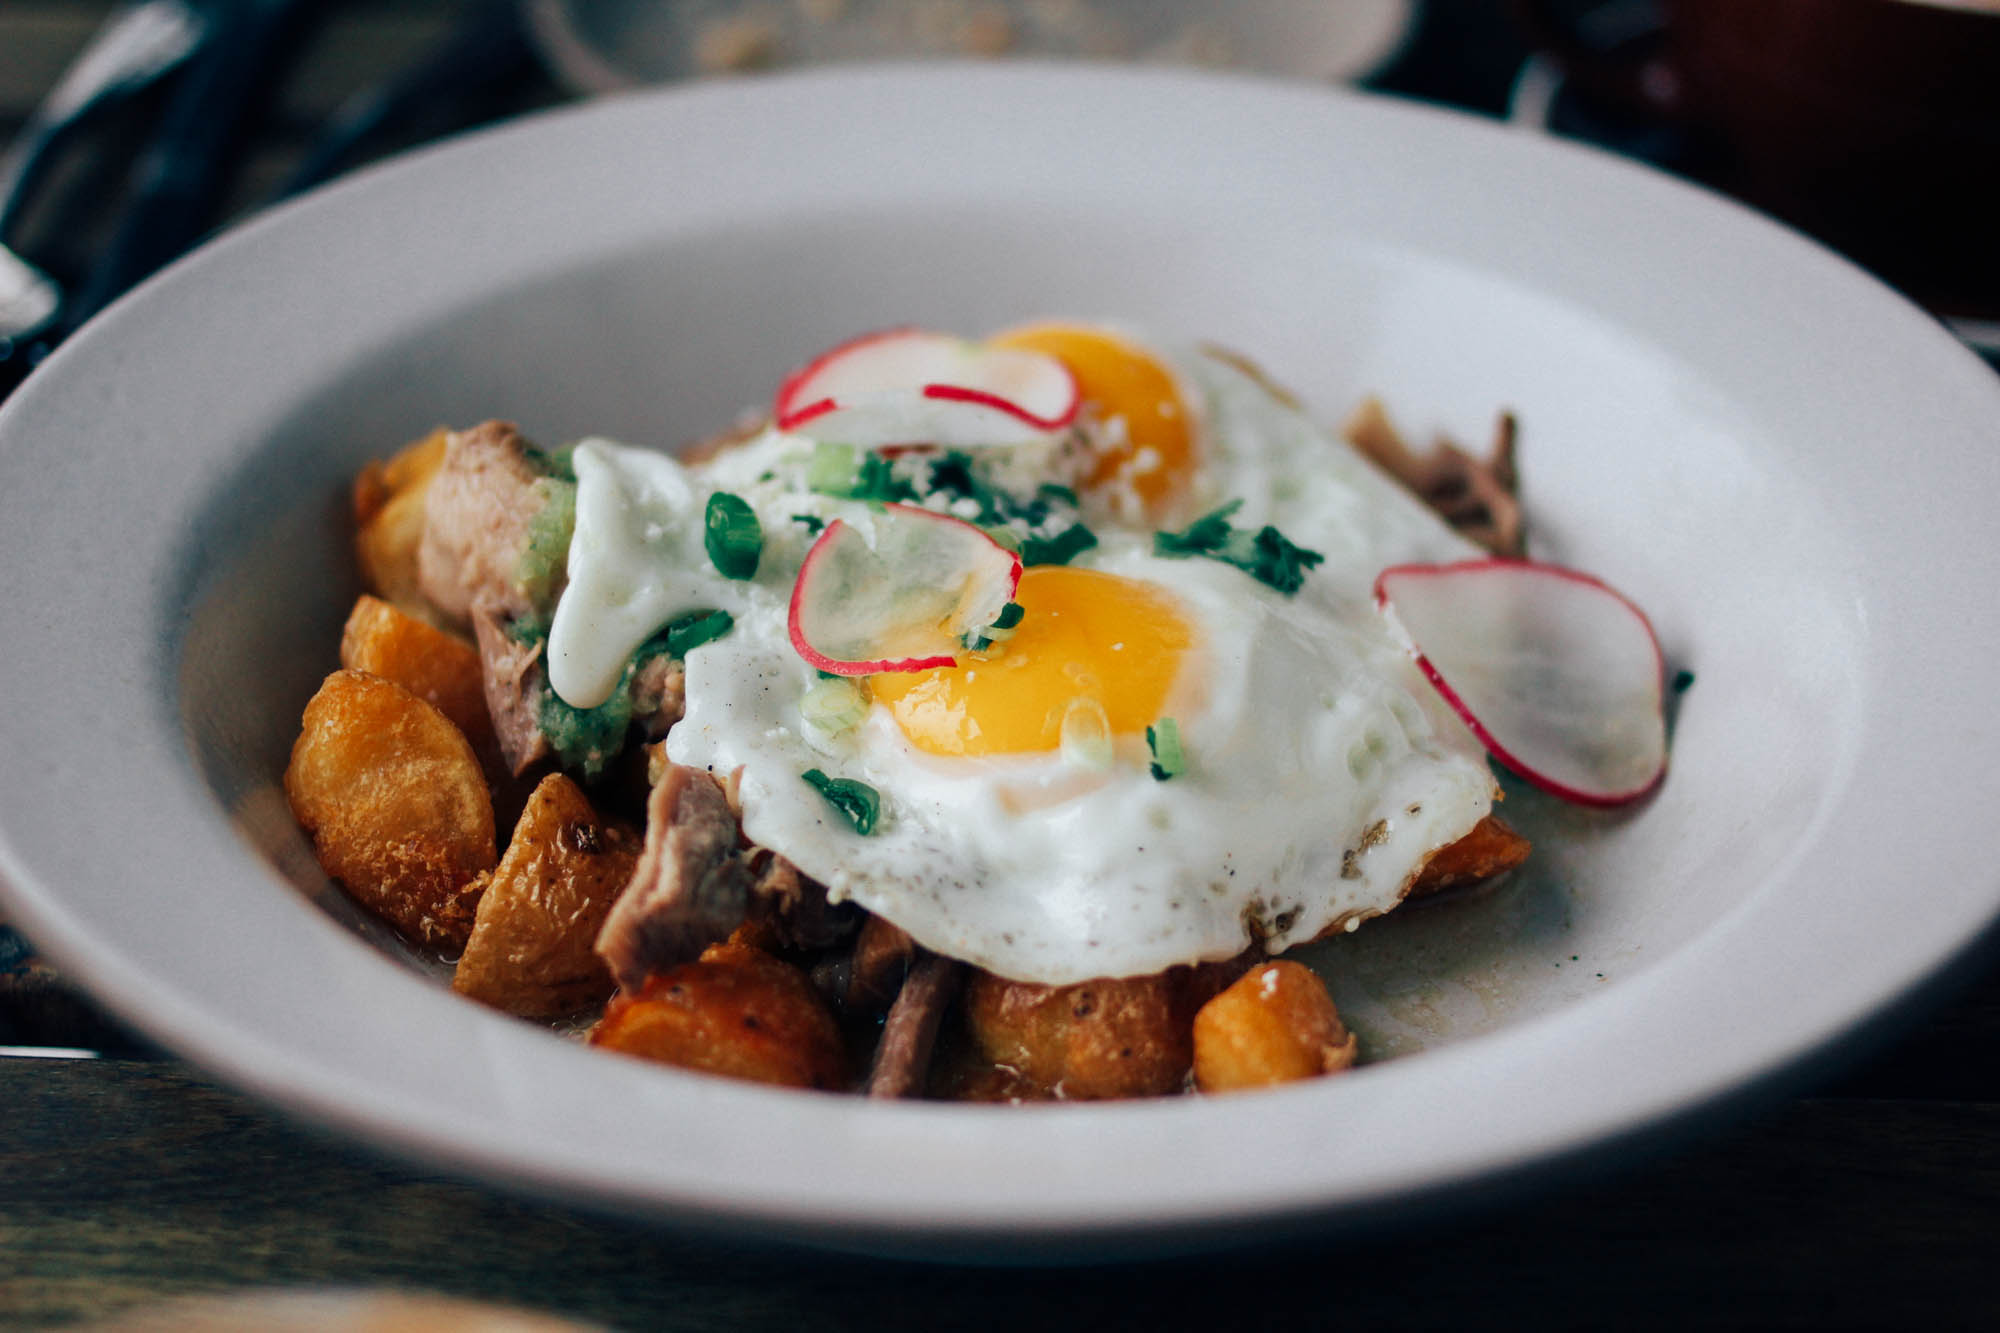 Smoked pork with crispy potatoes, fried eggs